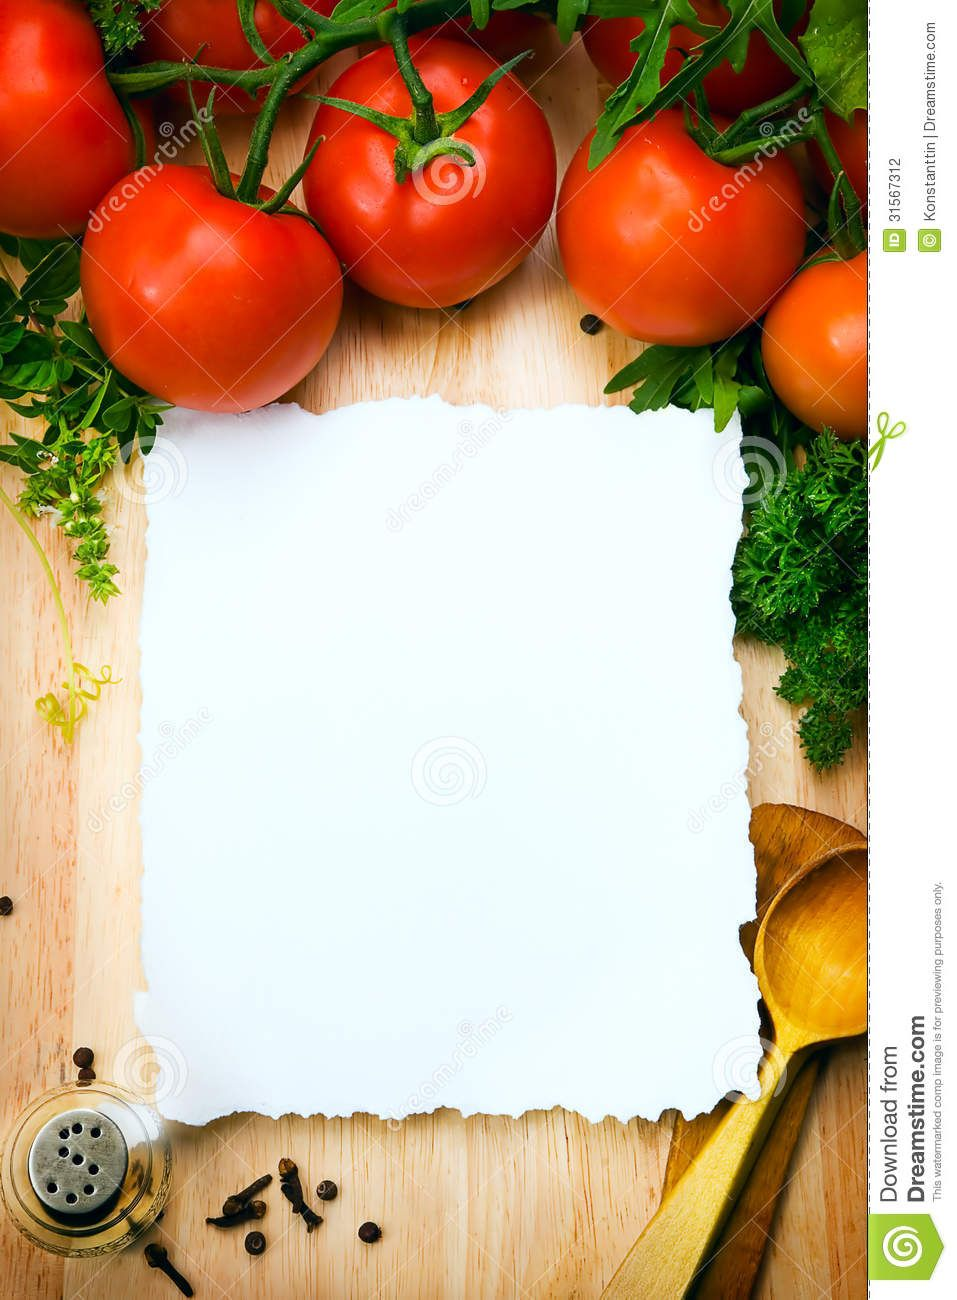 Wallpaper Culinary Arts Food Food background wallpapers Food 957x1300